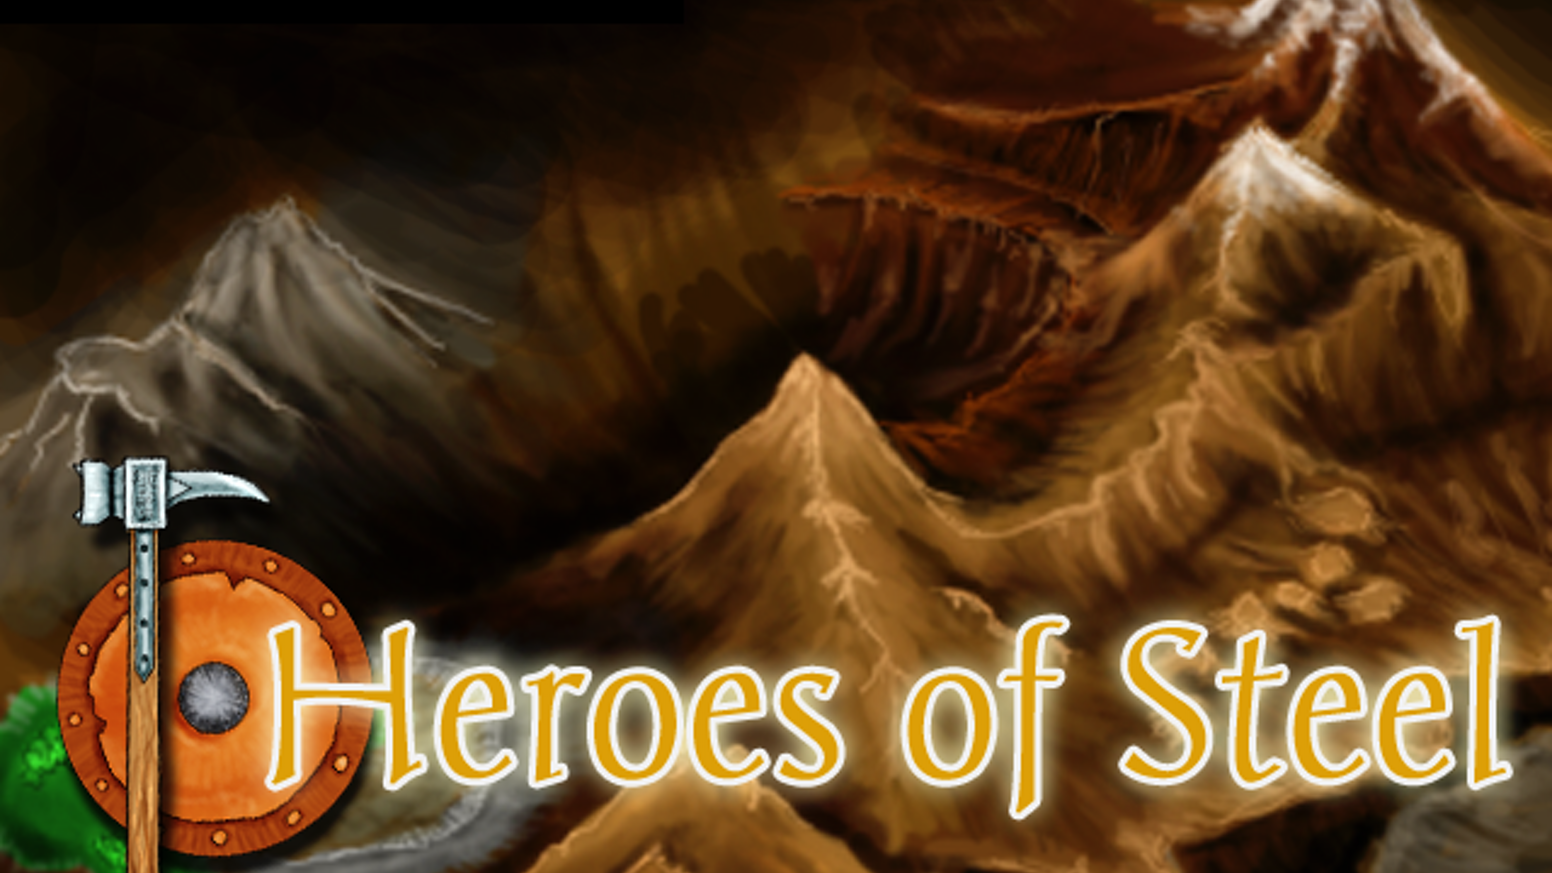 Heroes of Steel - Fantasy RPG by Trese Brothers Games